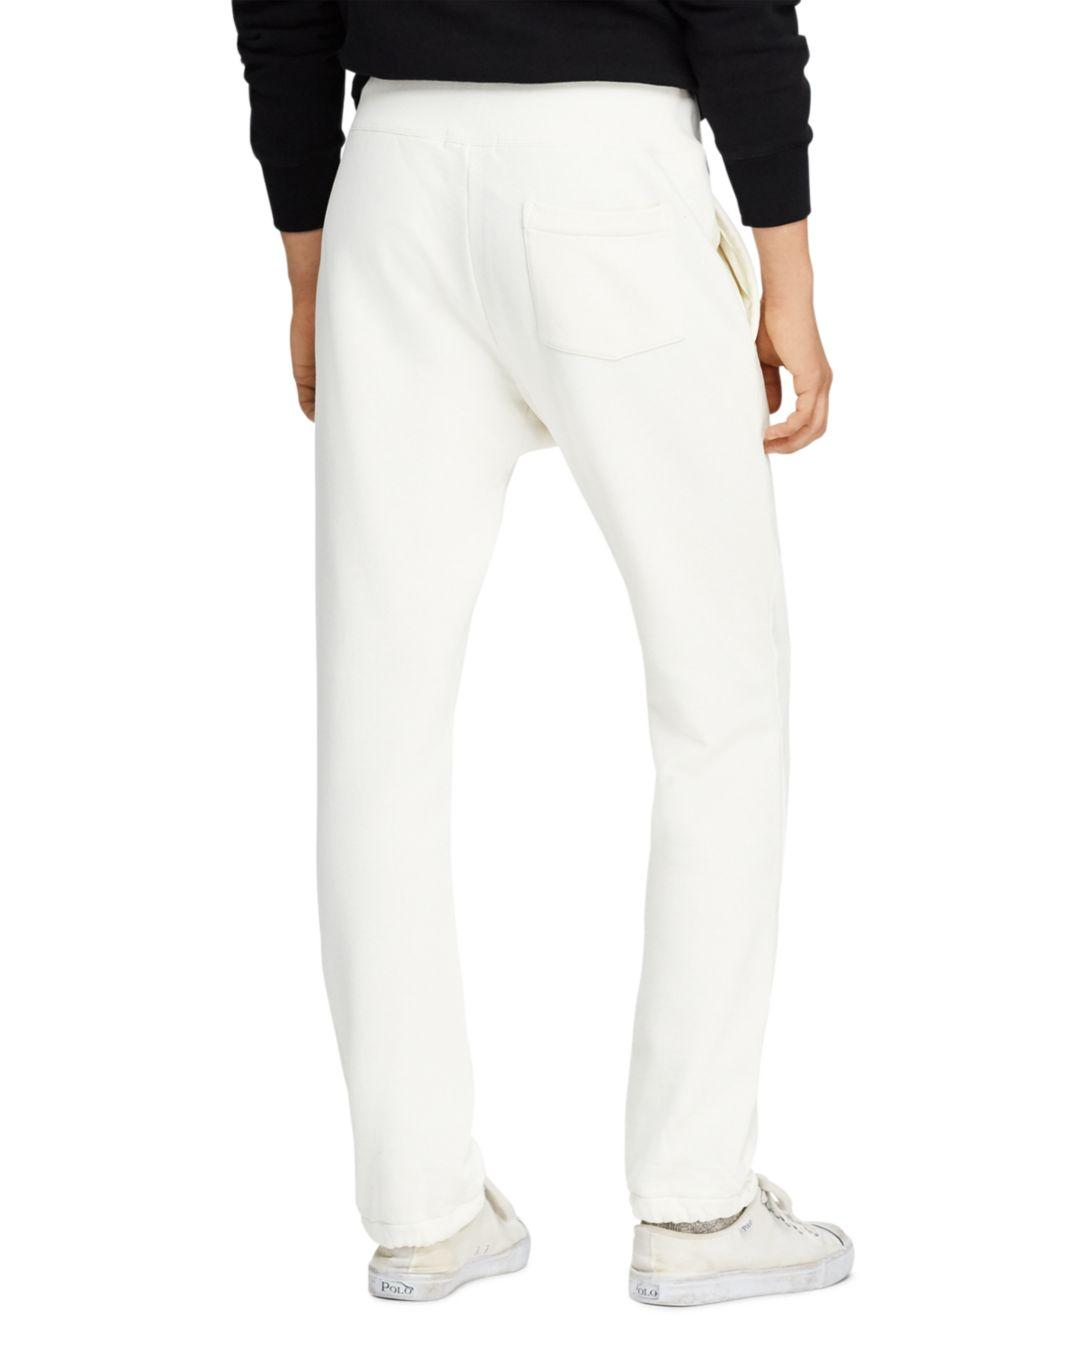 a896bdcab6ae Lyst - Polo Ralph Lauren Yale Patch-accented Fleece Jogger Pants in White  for Men